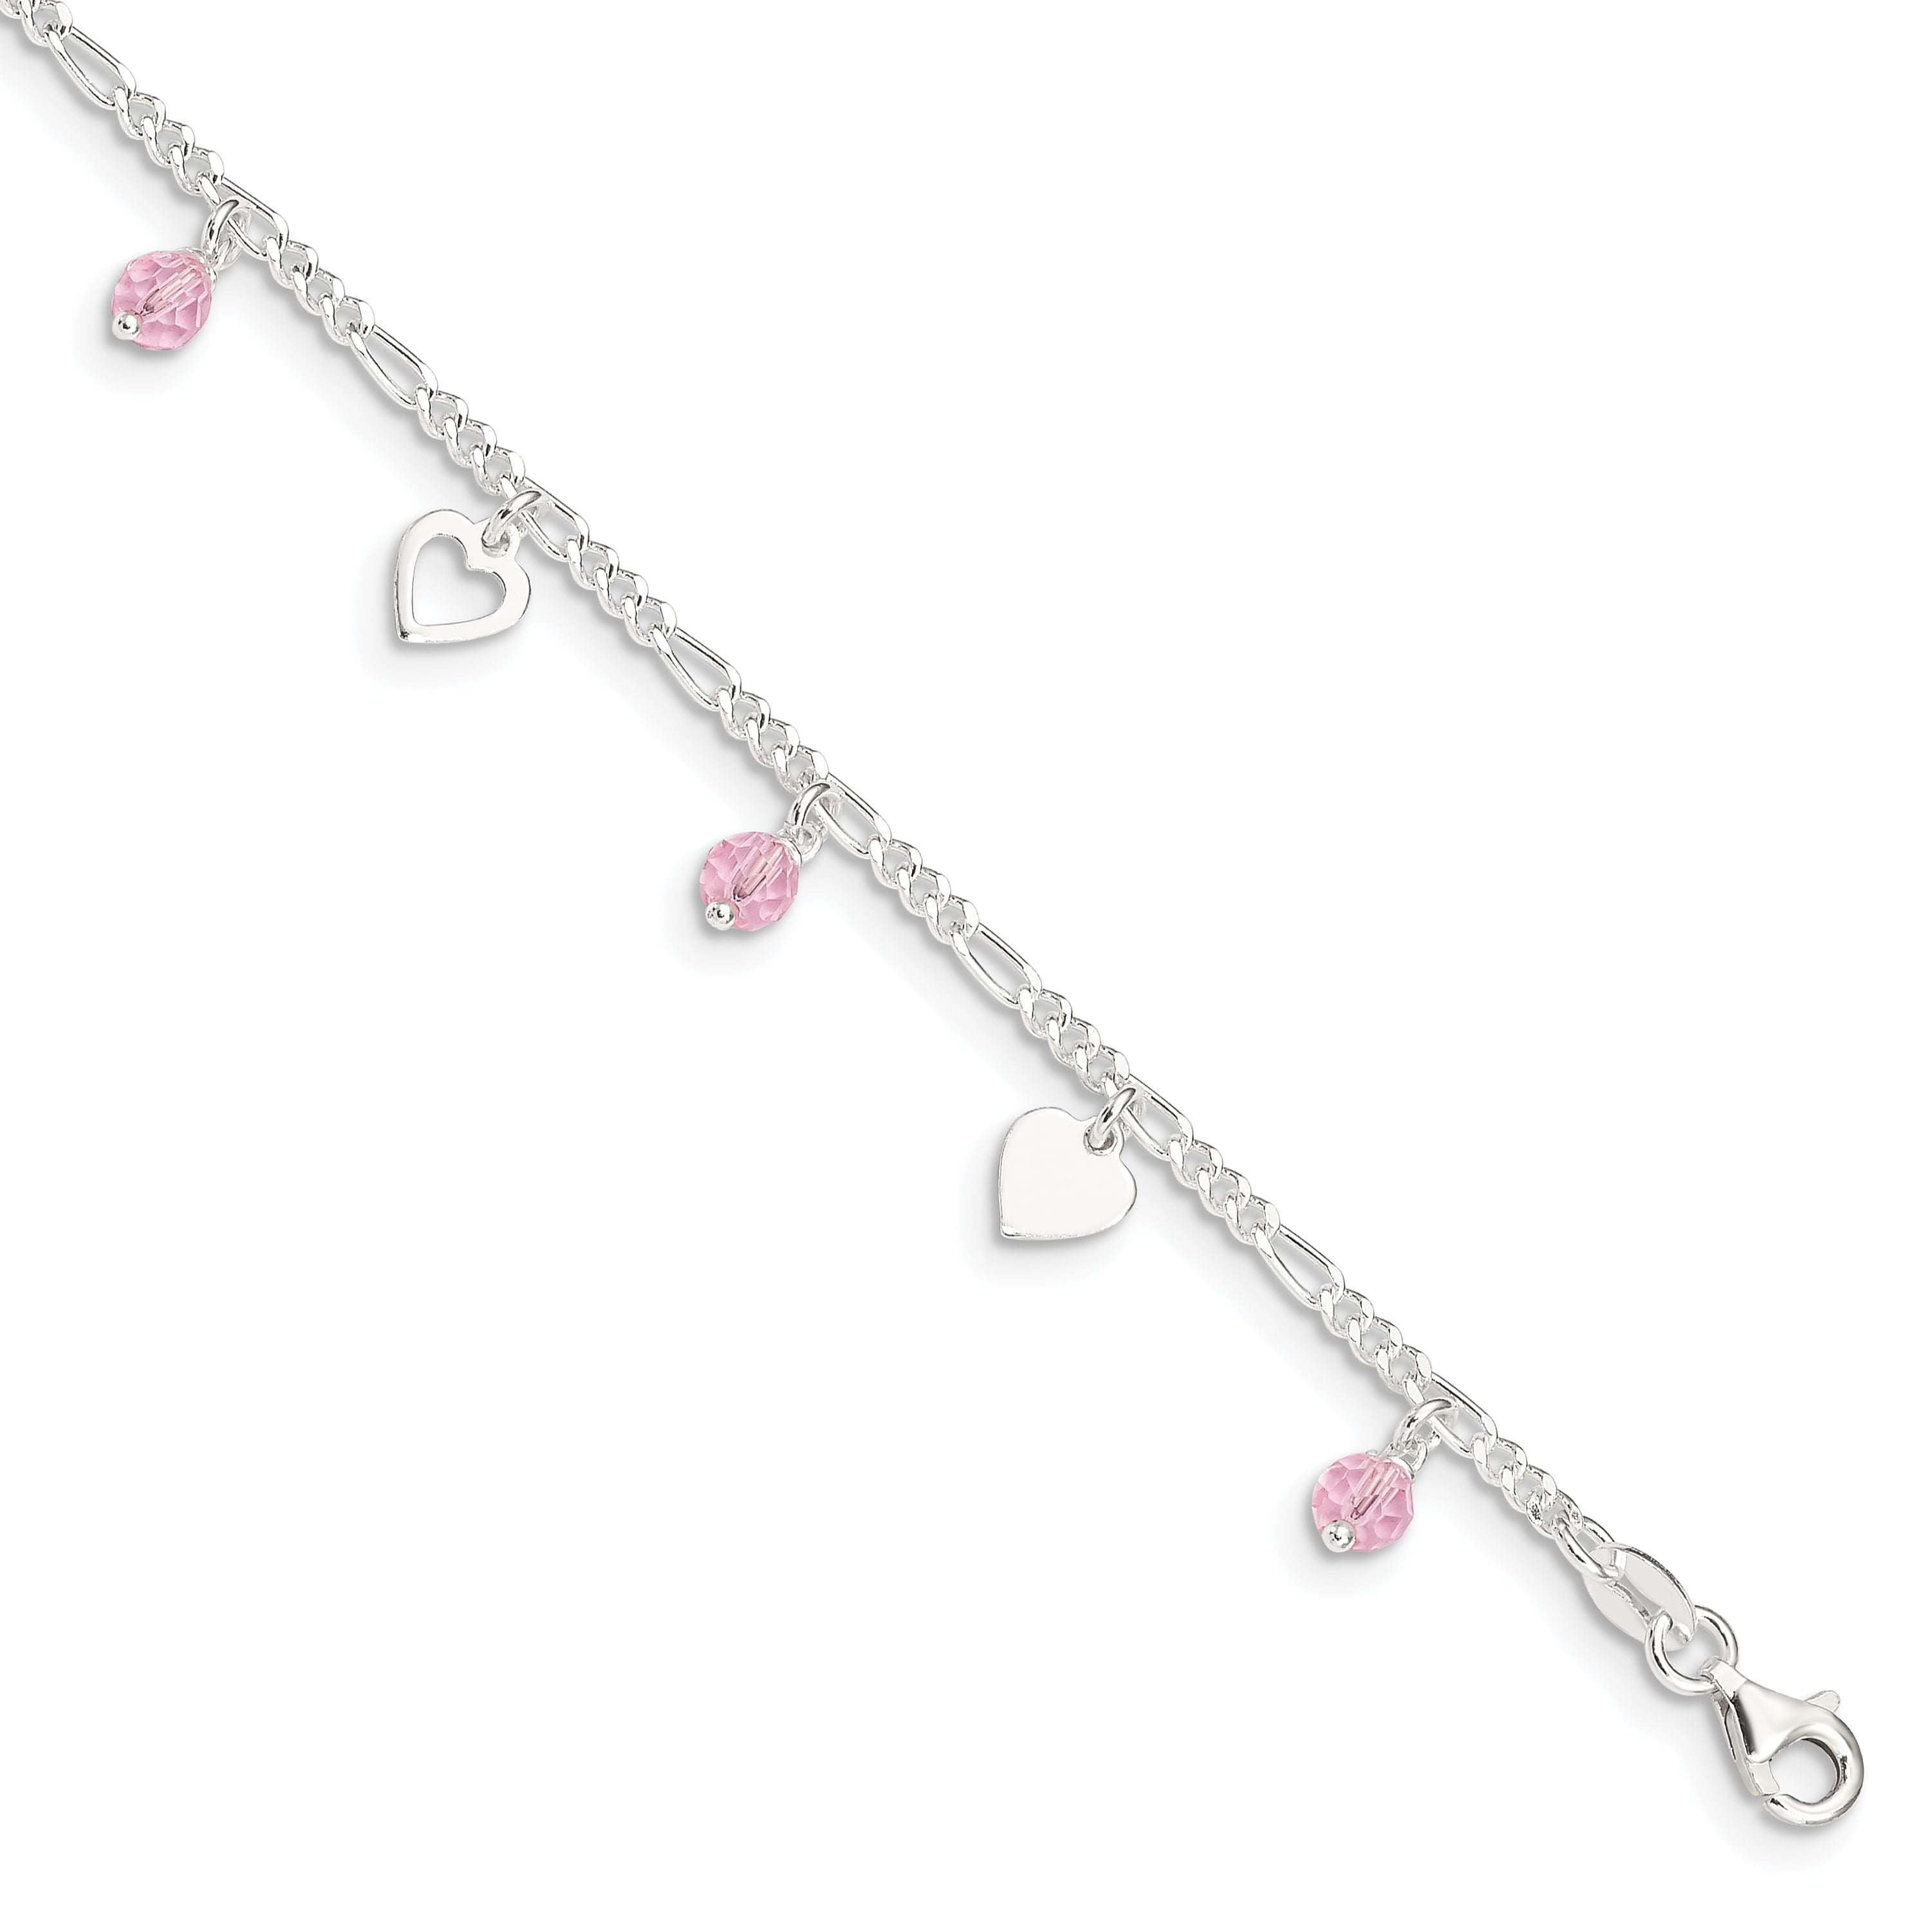 925 Sterling Silver Rose Tone Heart 9 Inch 1 Anklet Ankle Beach Chain Bracelet Fine Jewellery Gifts For Women For Her